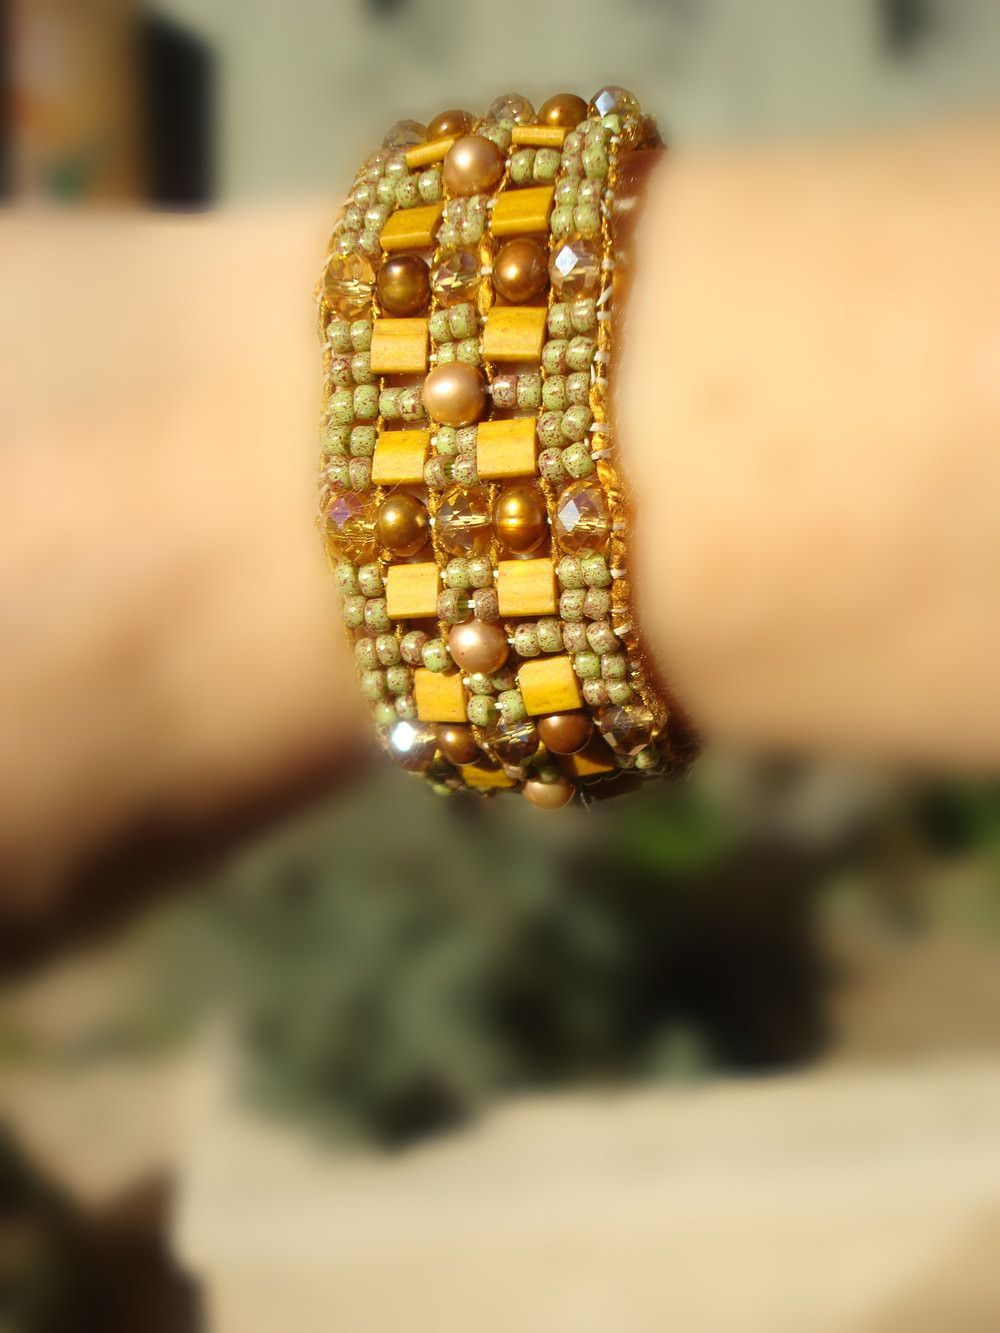 Woven Beaded Bracelet. Beautiful Golden Yellows and Bronzes, Pearls, Crystals, Glass Beads